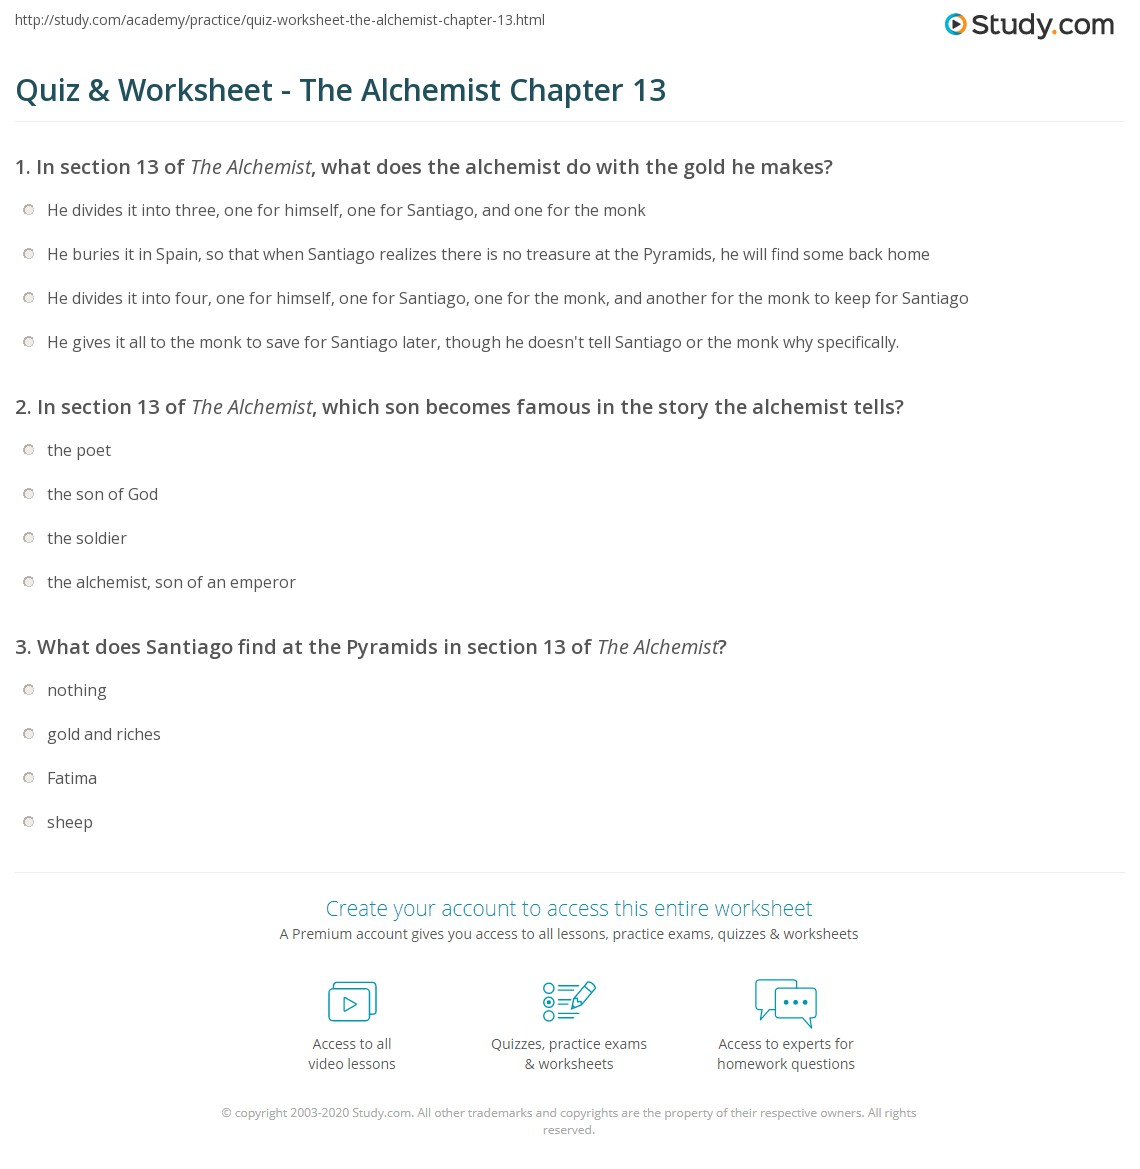 quiz worksheet the alchemist chapter com in section 13 of the alchemist which son becomes famous in the story the alchemist tells